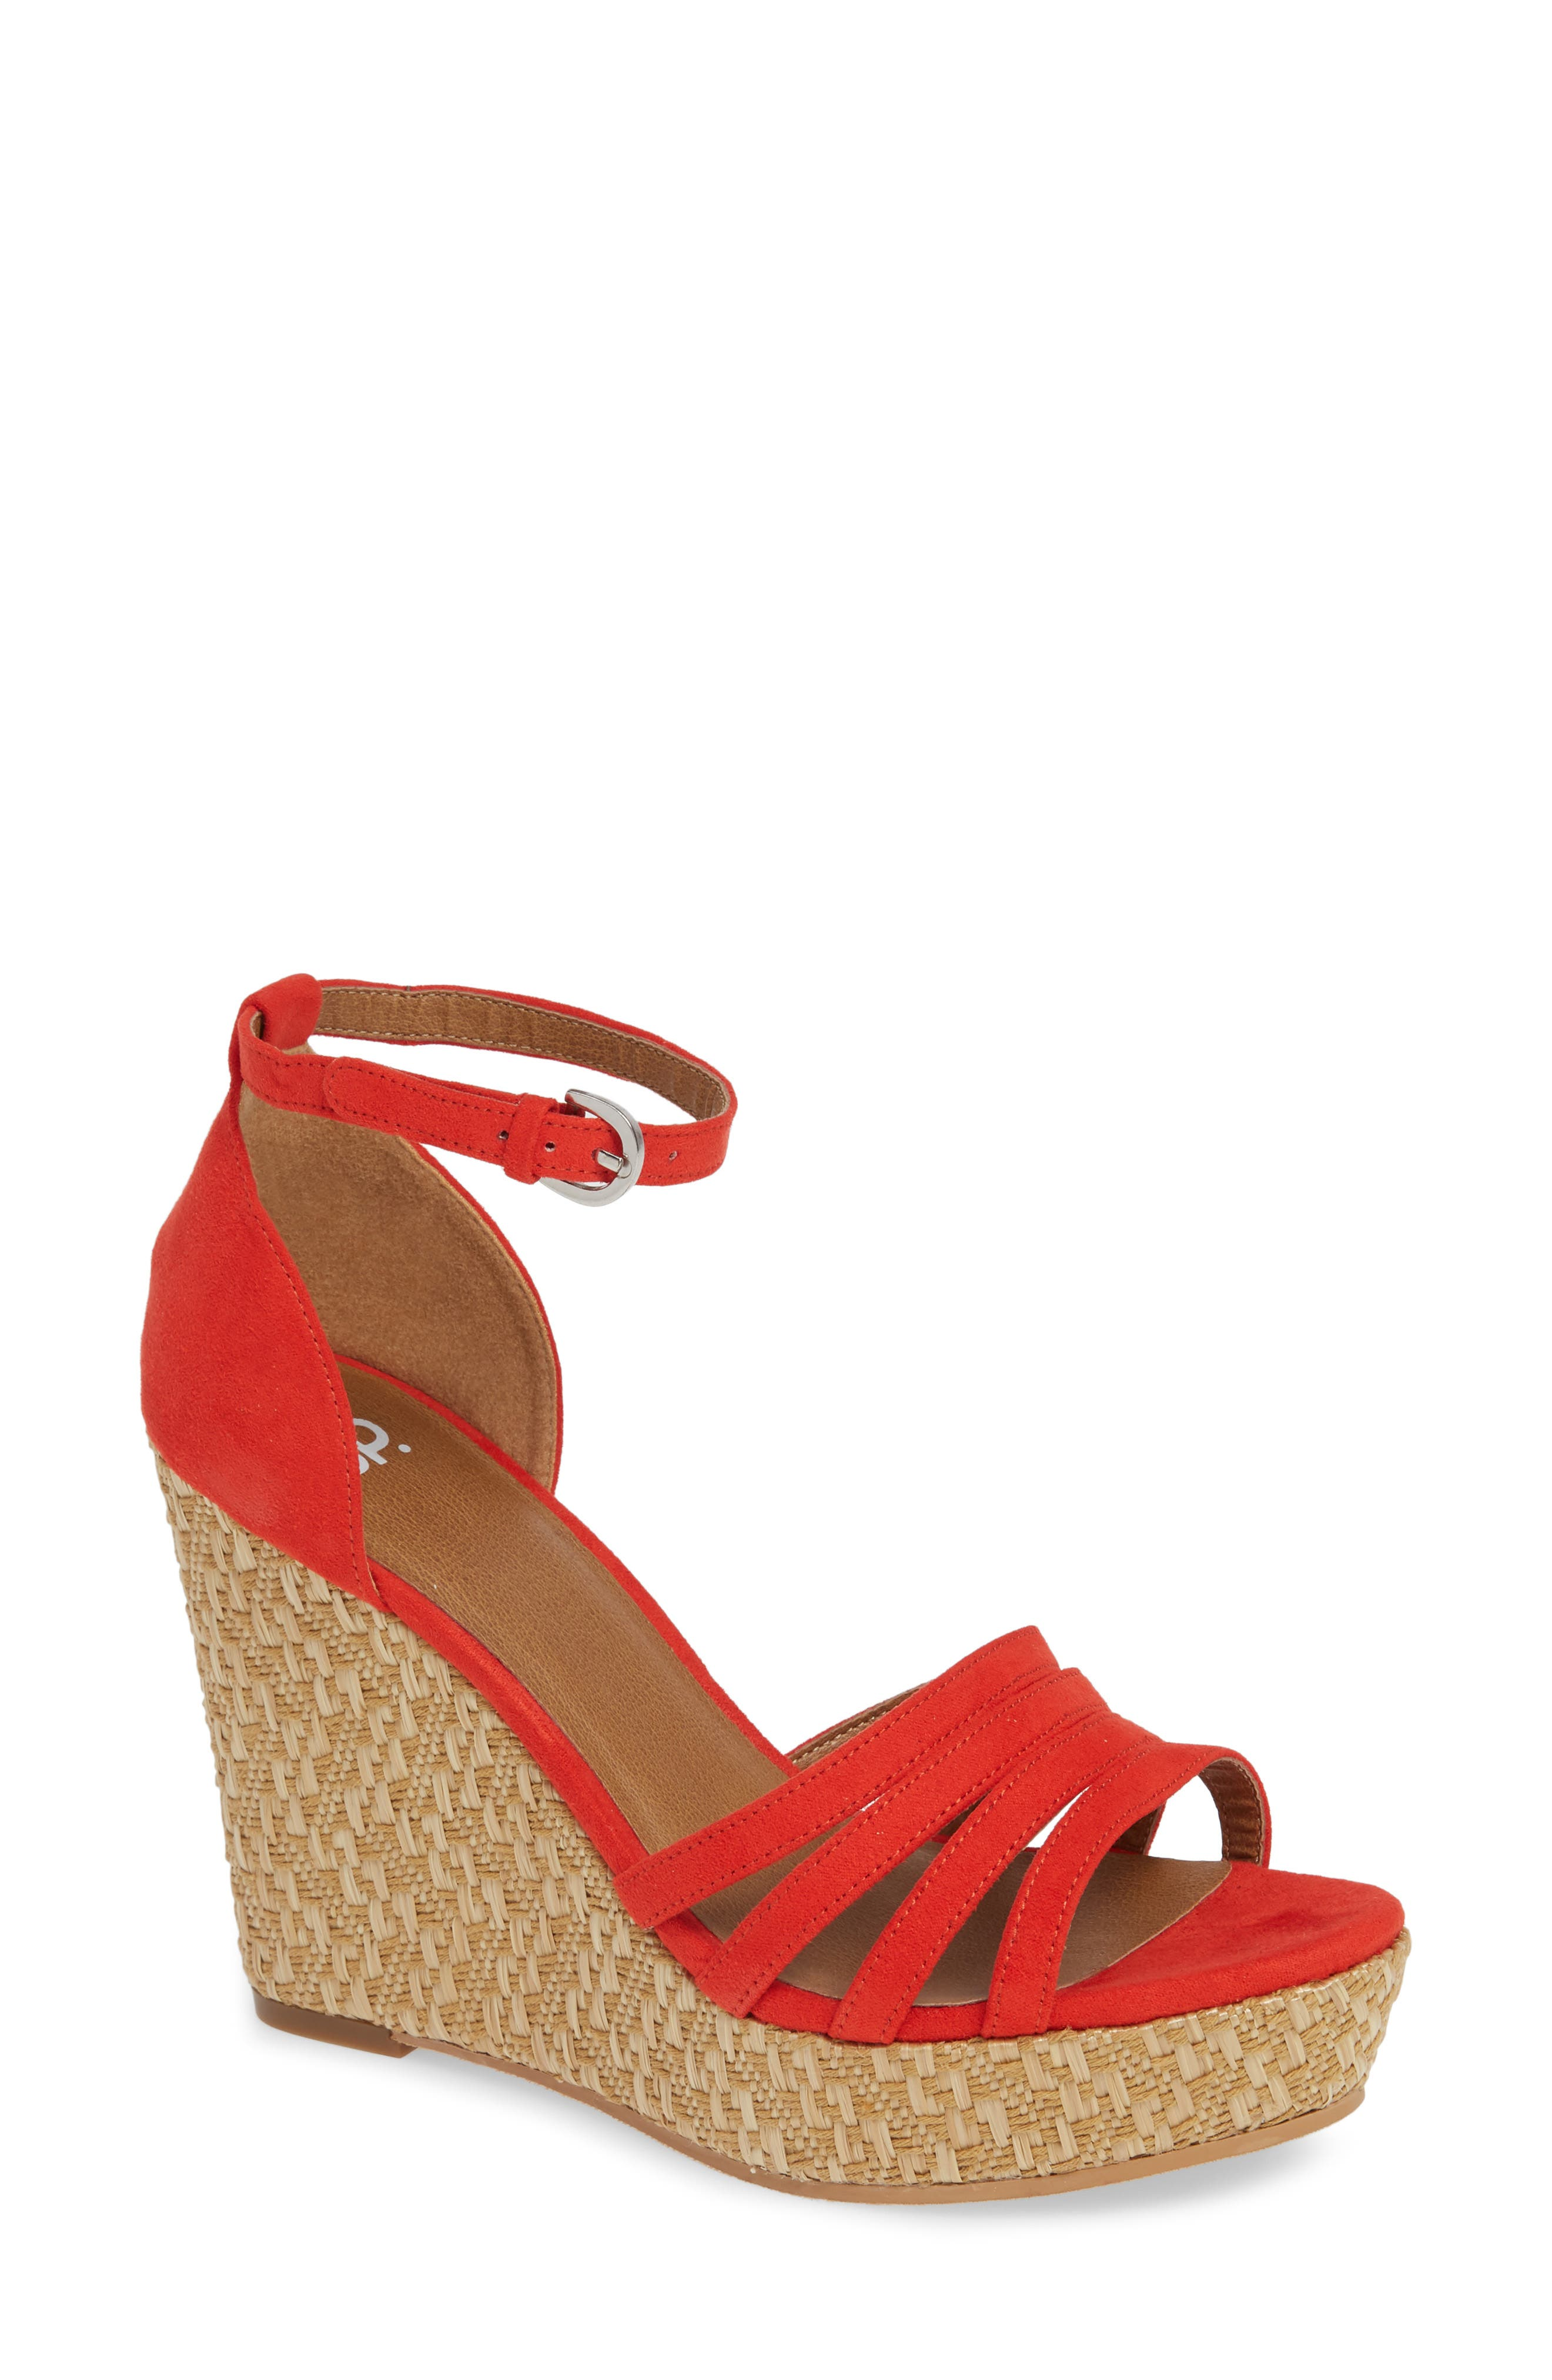 Scarlette Wedge Sandal,                         Main,                         color, RED FAUX SUEDE